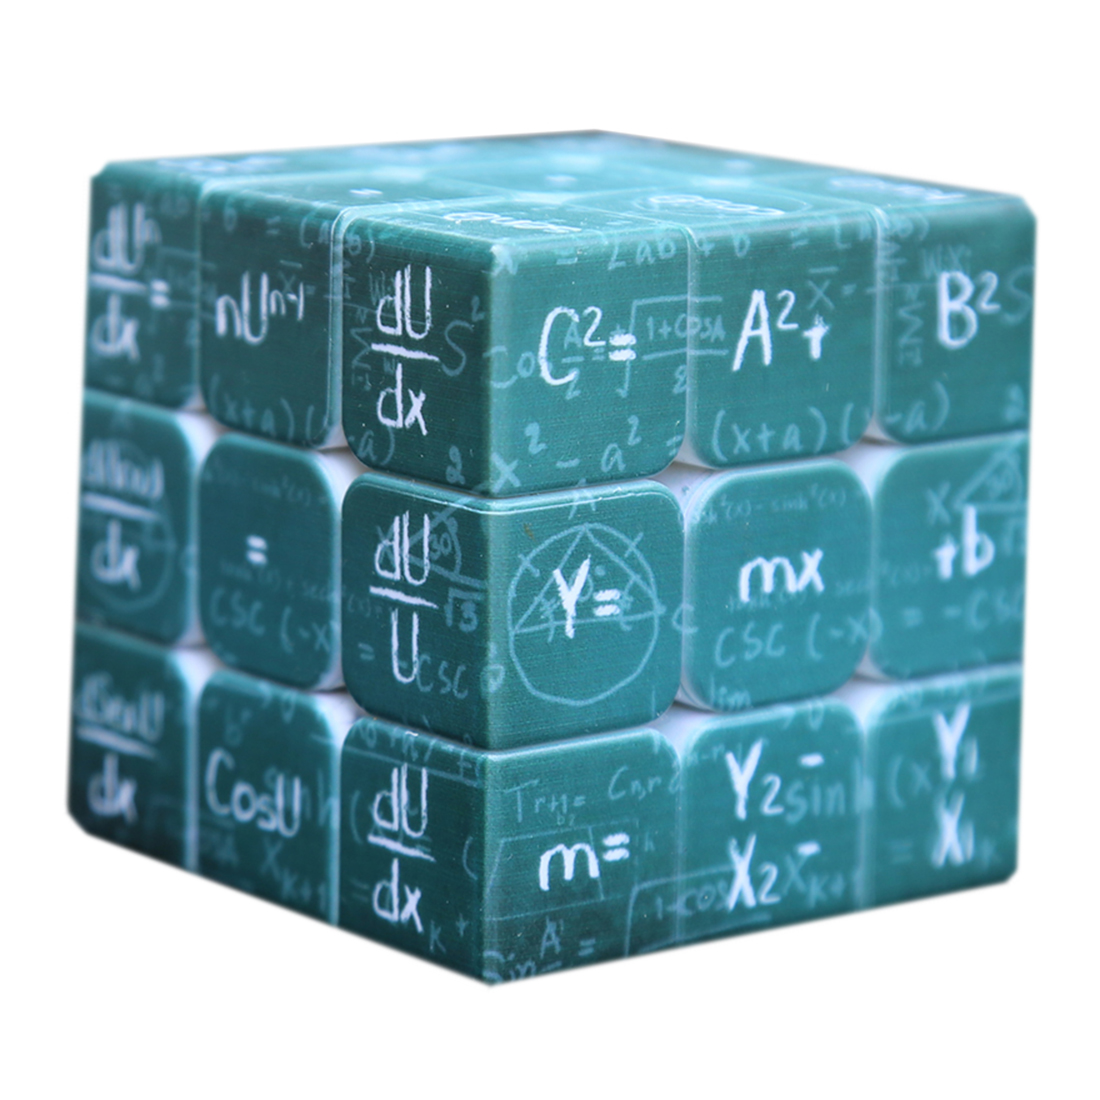 Fangmo UV Physical 3x3x3 Magic Cube Puzzle Toy For Brain Traning - Green Bottom